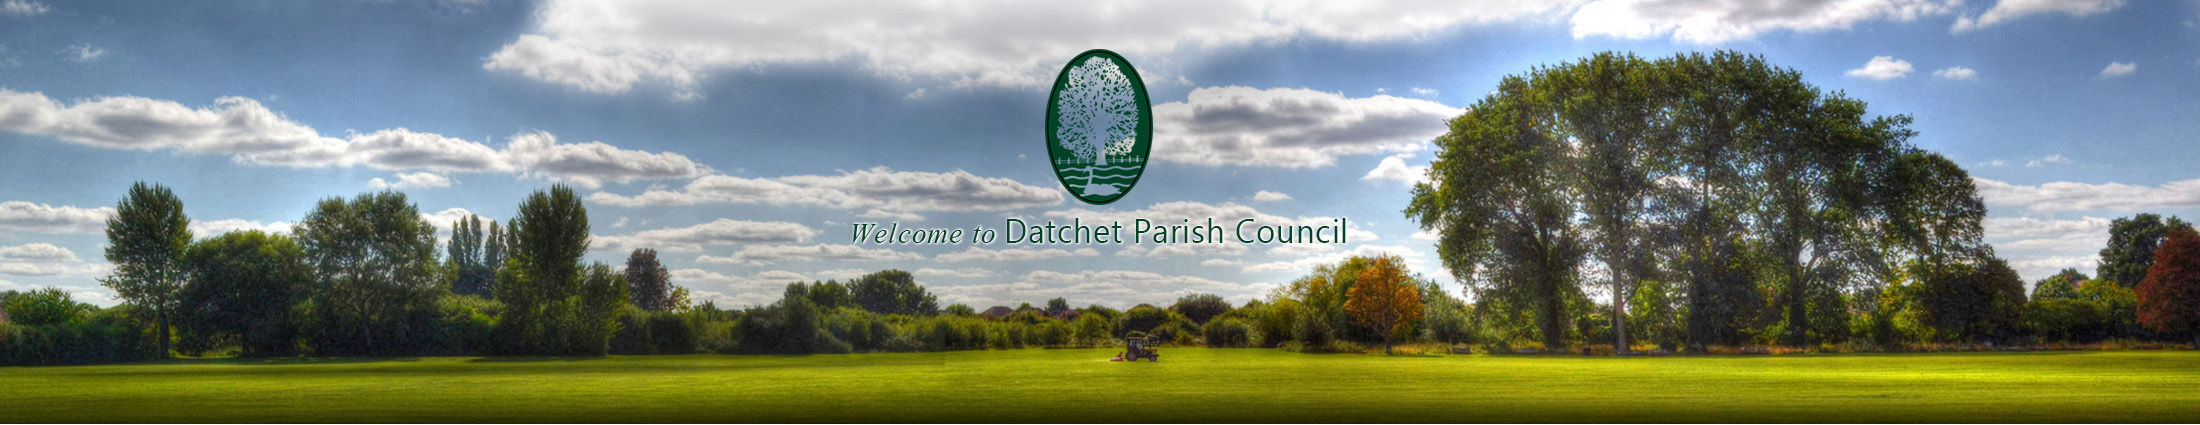 Header Image for Datchet Parish Council